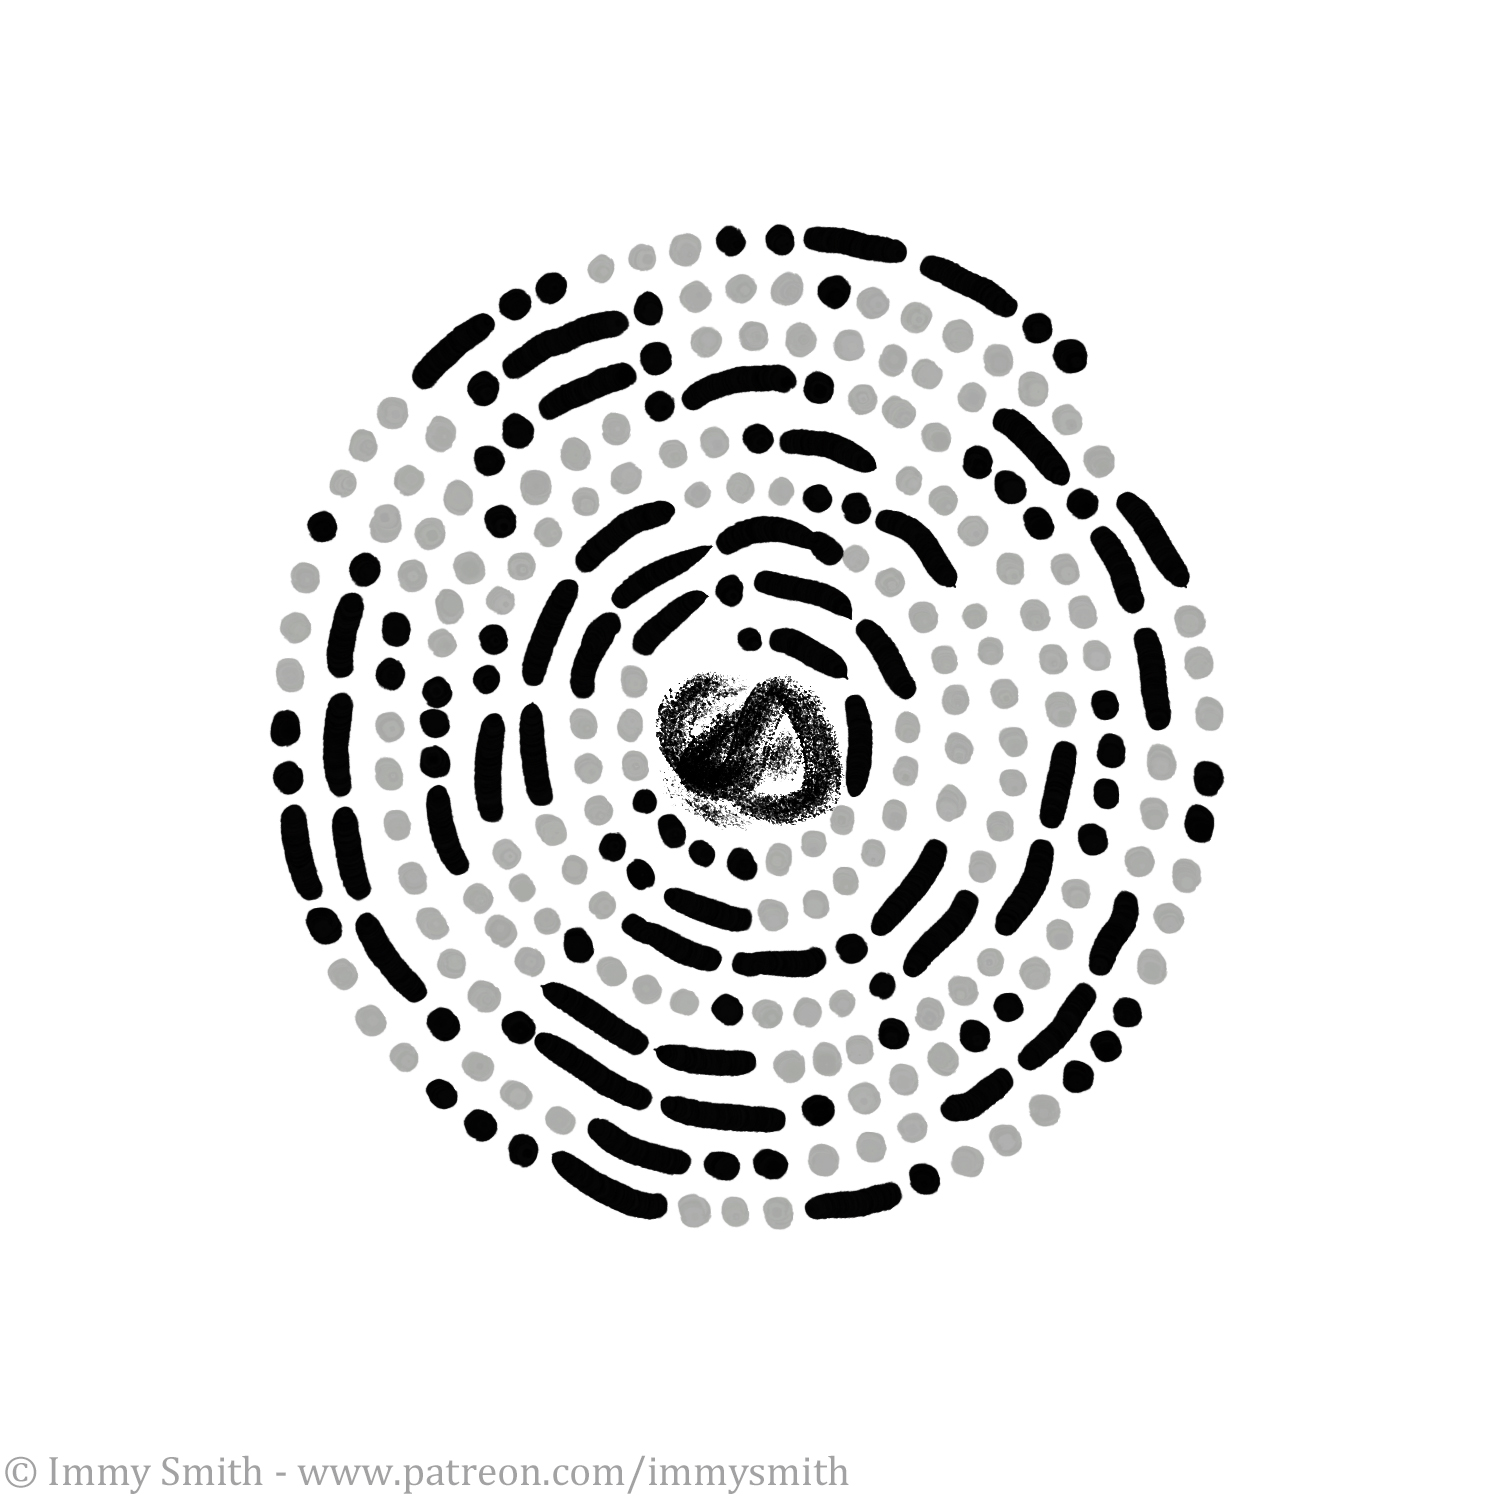 a pattern made of black & grey dots and dashes (representing morse code) around a black charcoal-like smudge.